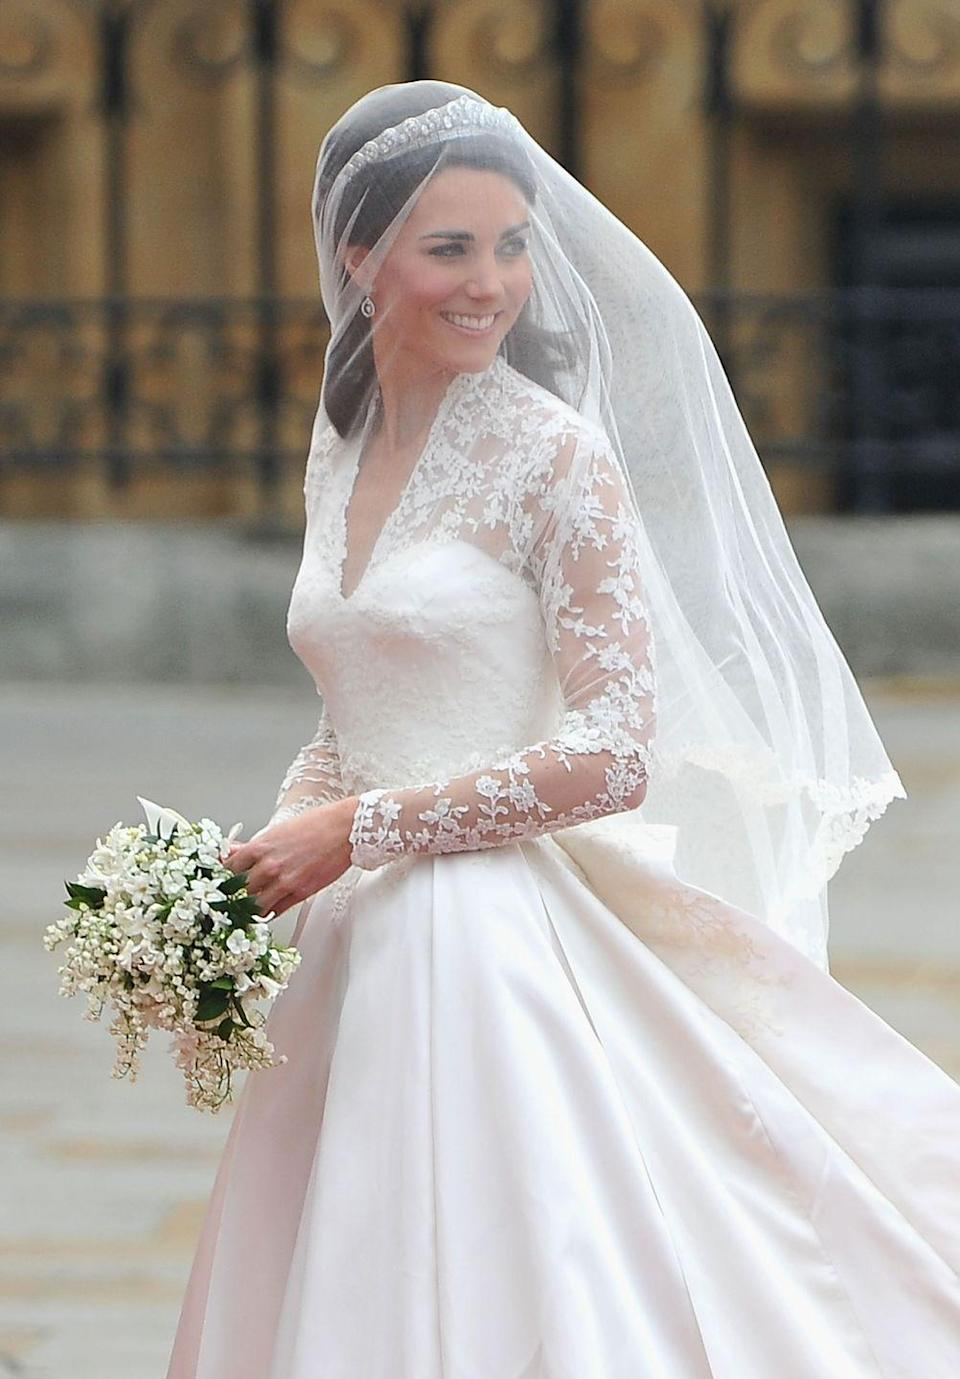 <p>Kate's bouquet consisted of lily of the valley, hyacinths, a sprig of myrtle, and Sweet William.</p><p>Kate's train measured two metes long – far shorter than Princess Diana's which measured a staggering 25 feet in length. </p><p>Her dress also featured 58 gazar and organza covered buttons on the back, fastened by rouleau loops.</p>